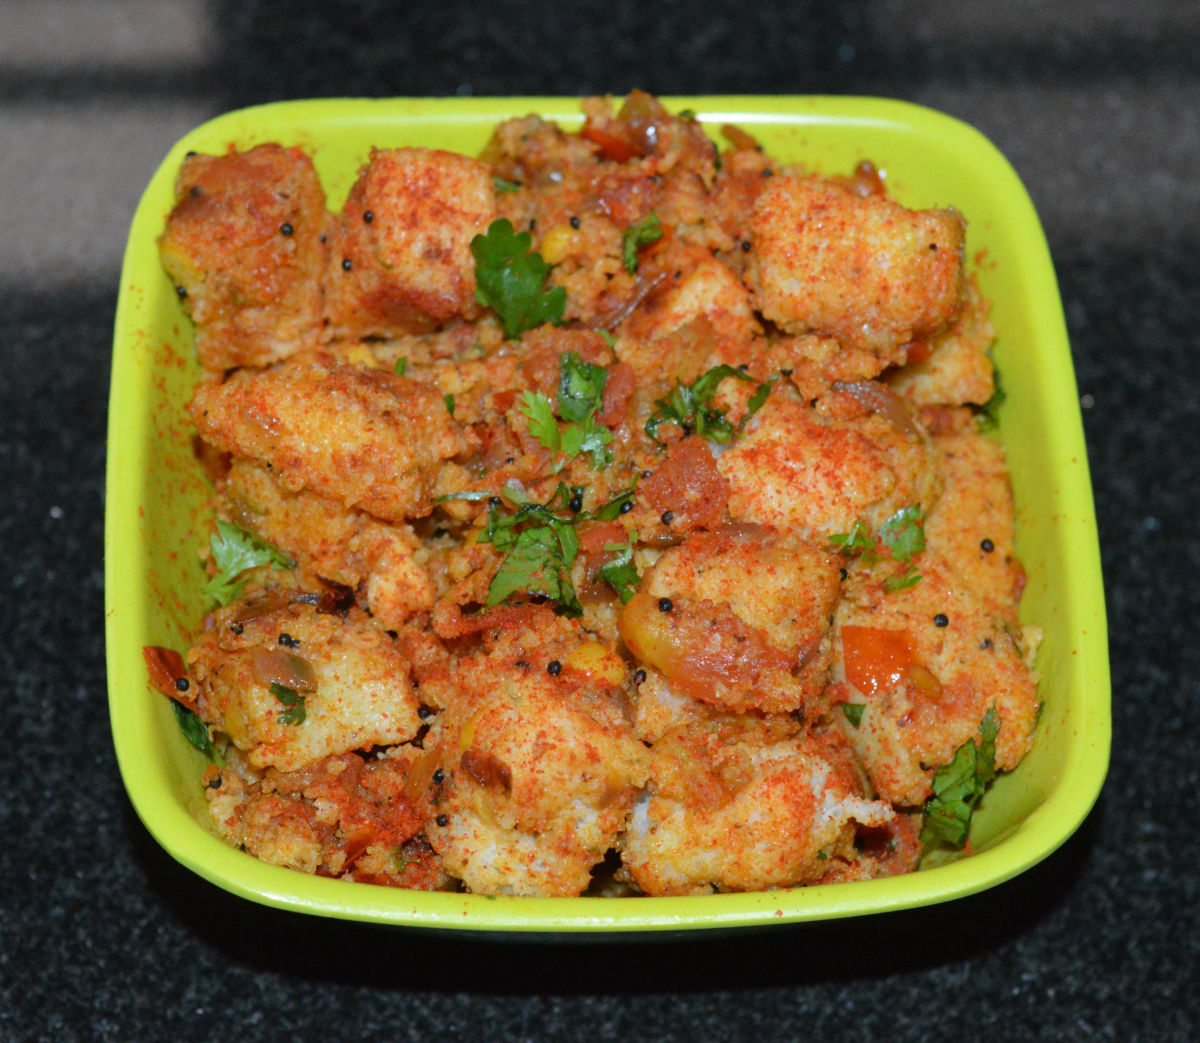 Serve spicy tava idli in a serving bowl or plate. Garnish it with finely chopped coriander leaves. Enjoy eating!